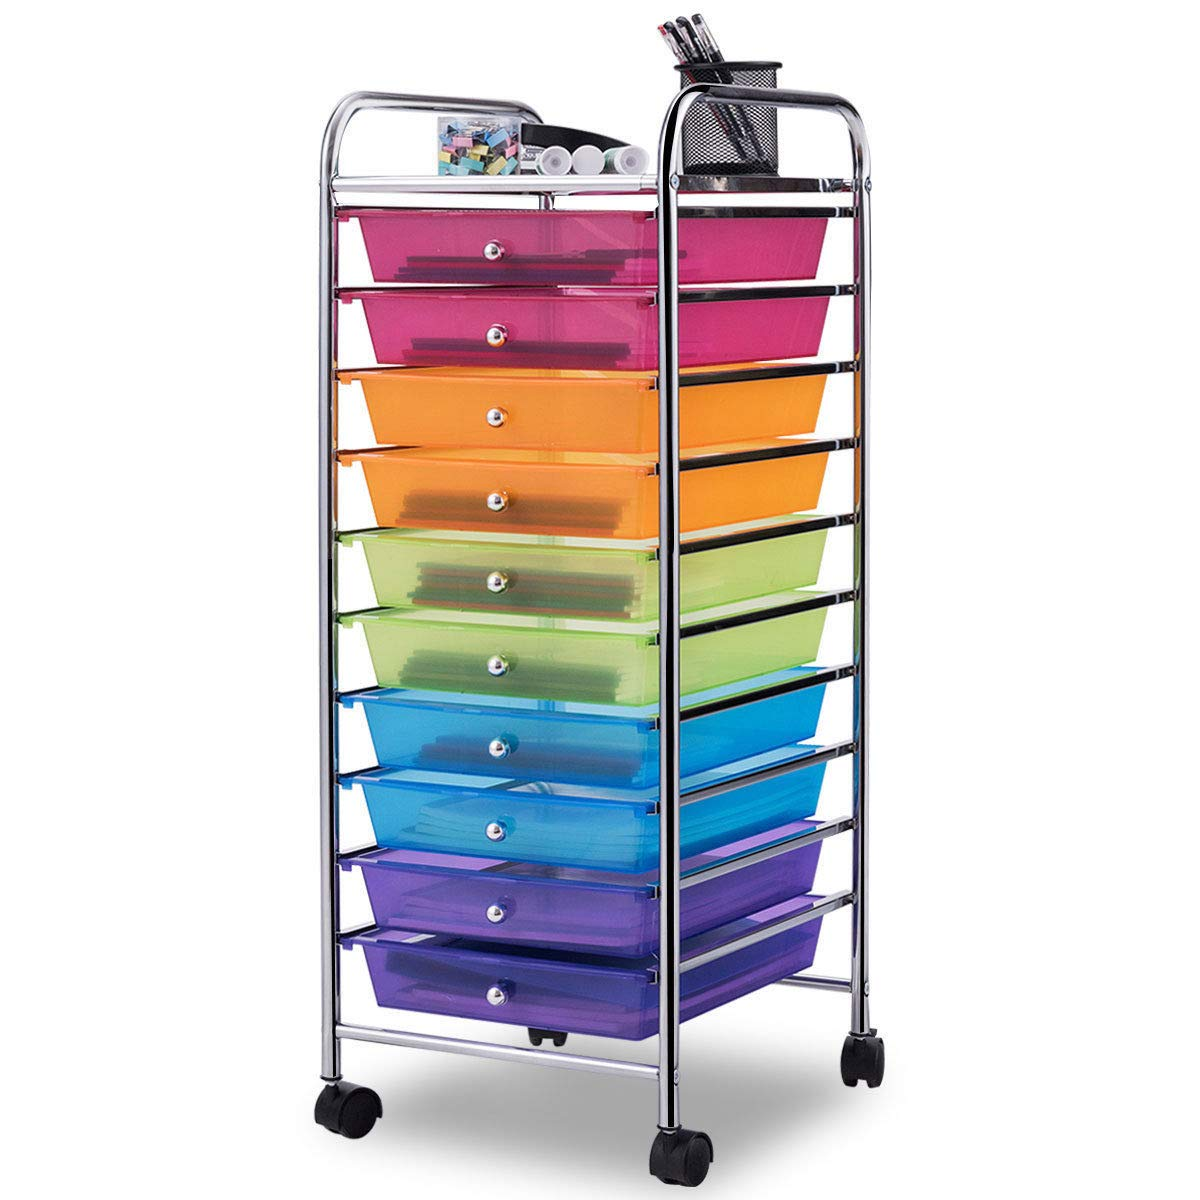 Giantex 10 Drawer Rolling Storage Cart Scrapbook Paper Office School Organizer (Multicolor) by Giantex